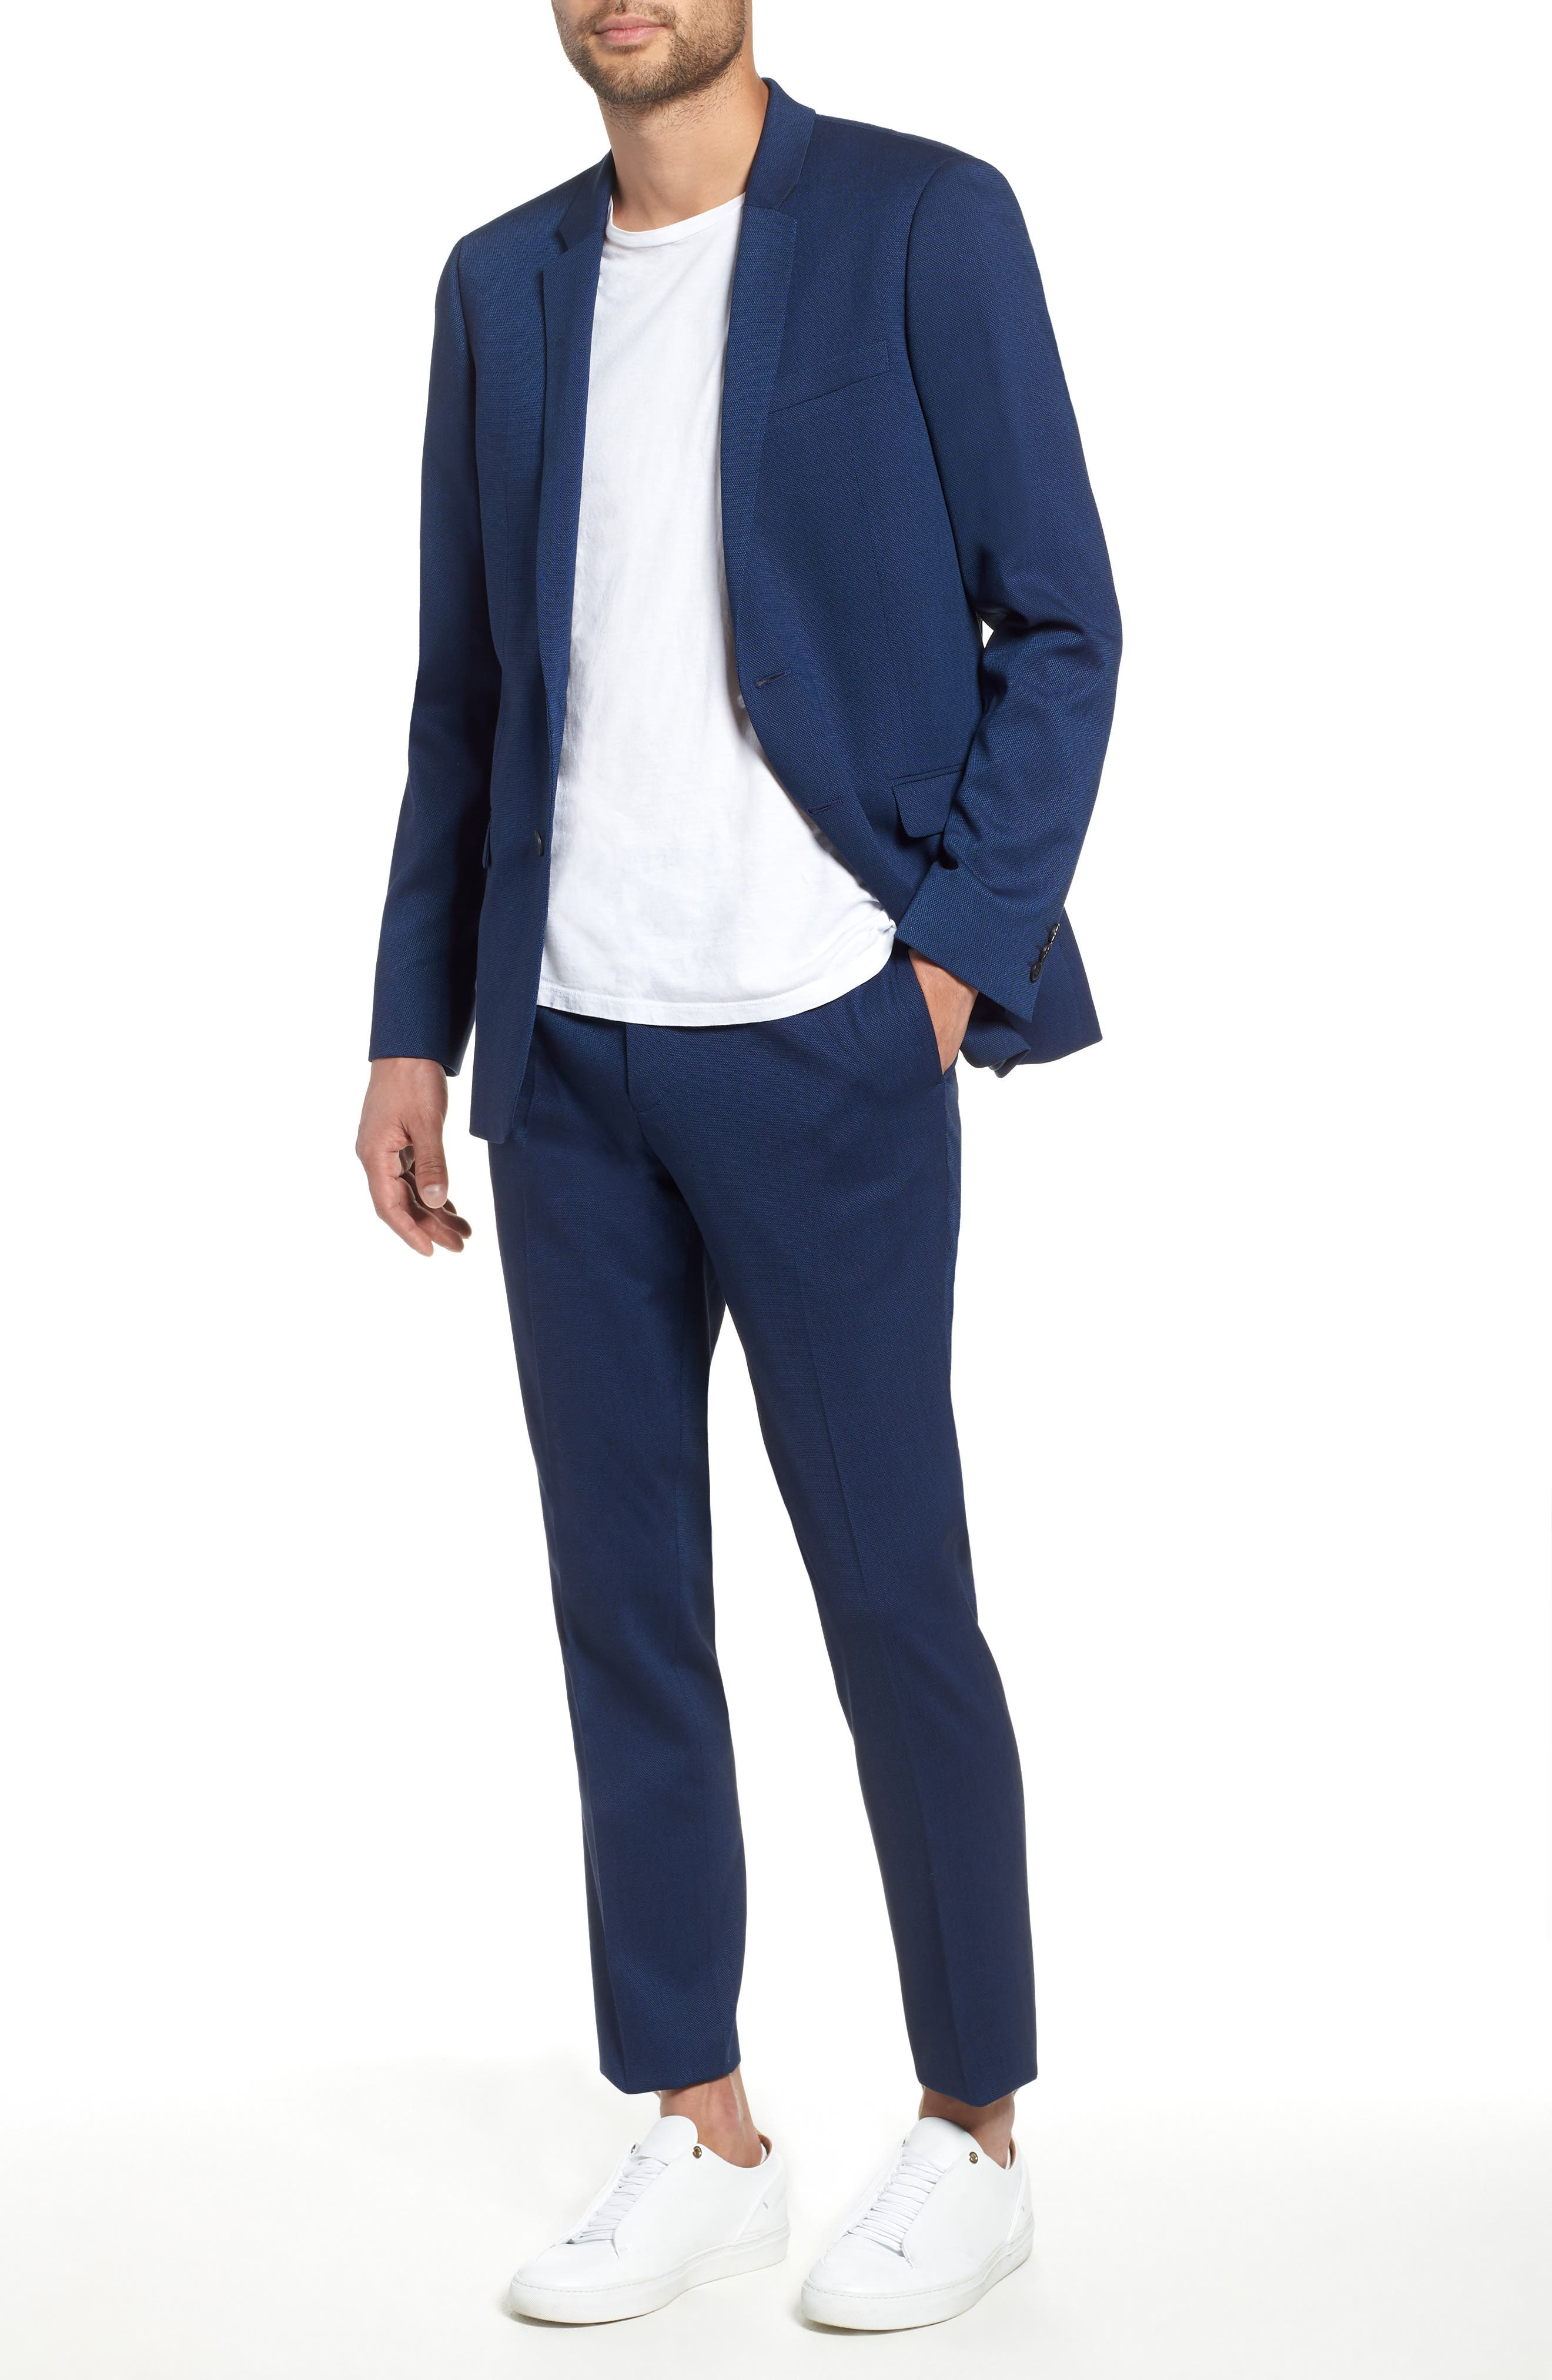 TOPMAN, Skinny Fit Suit Jacket, Alternate thumbnail 5, color, BLUE